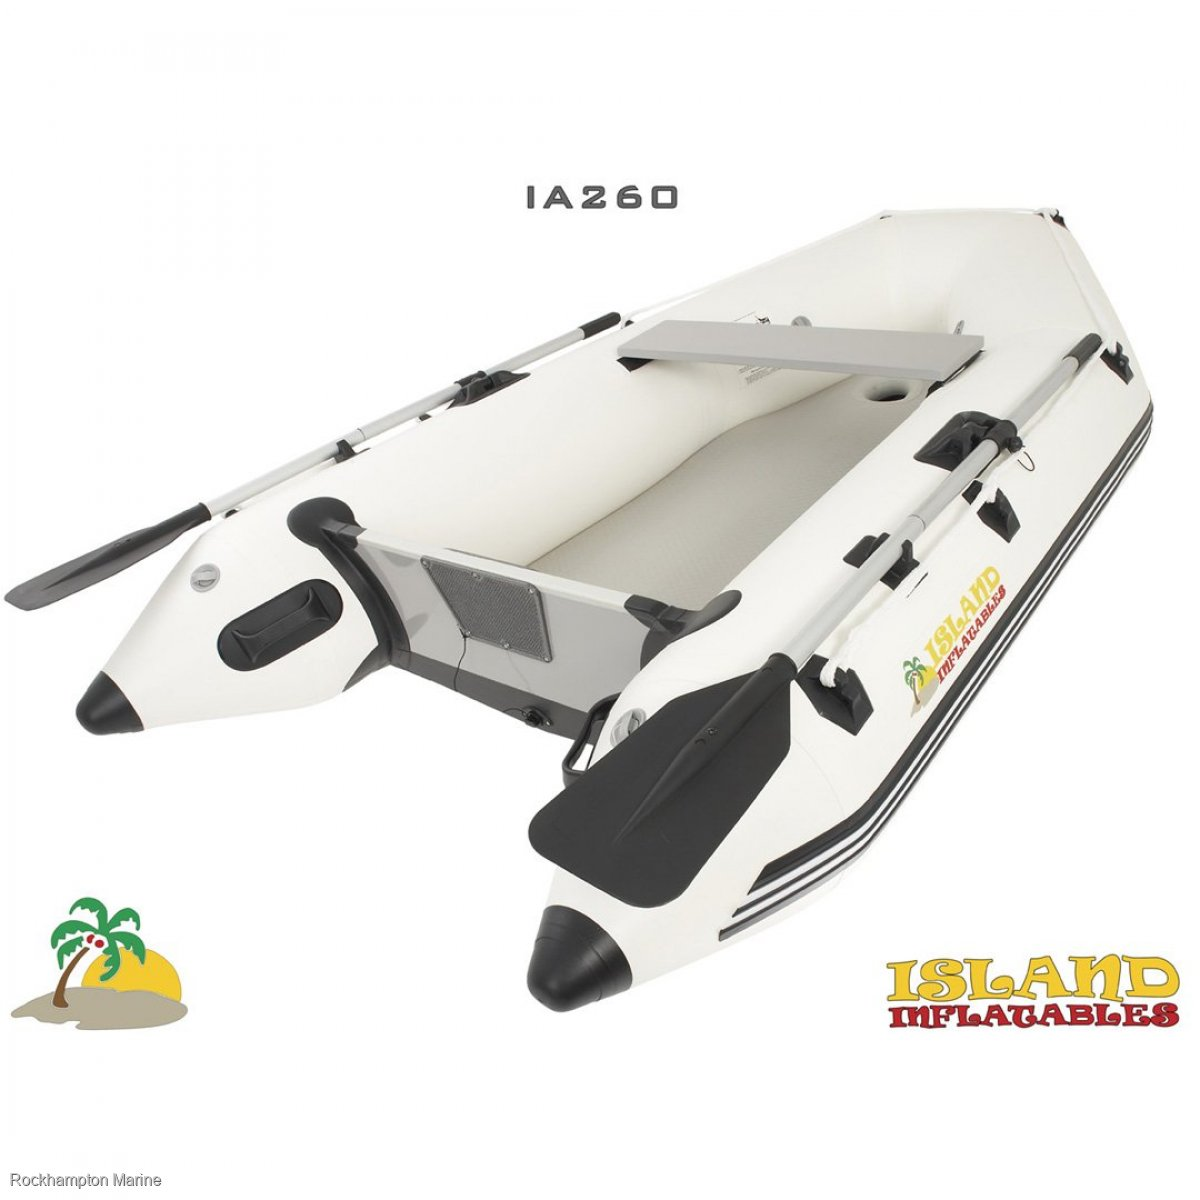 Island Inflatables Island Airdeck 260 Boat + Parsun 5hp Four Stroke Outboard Package